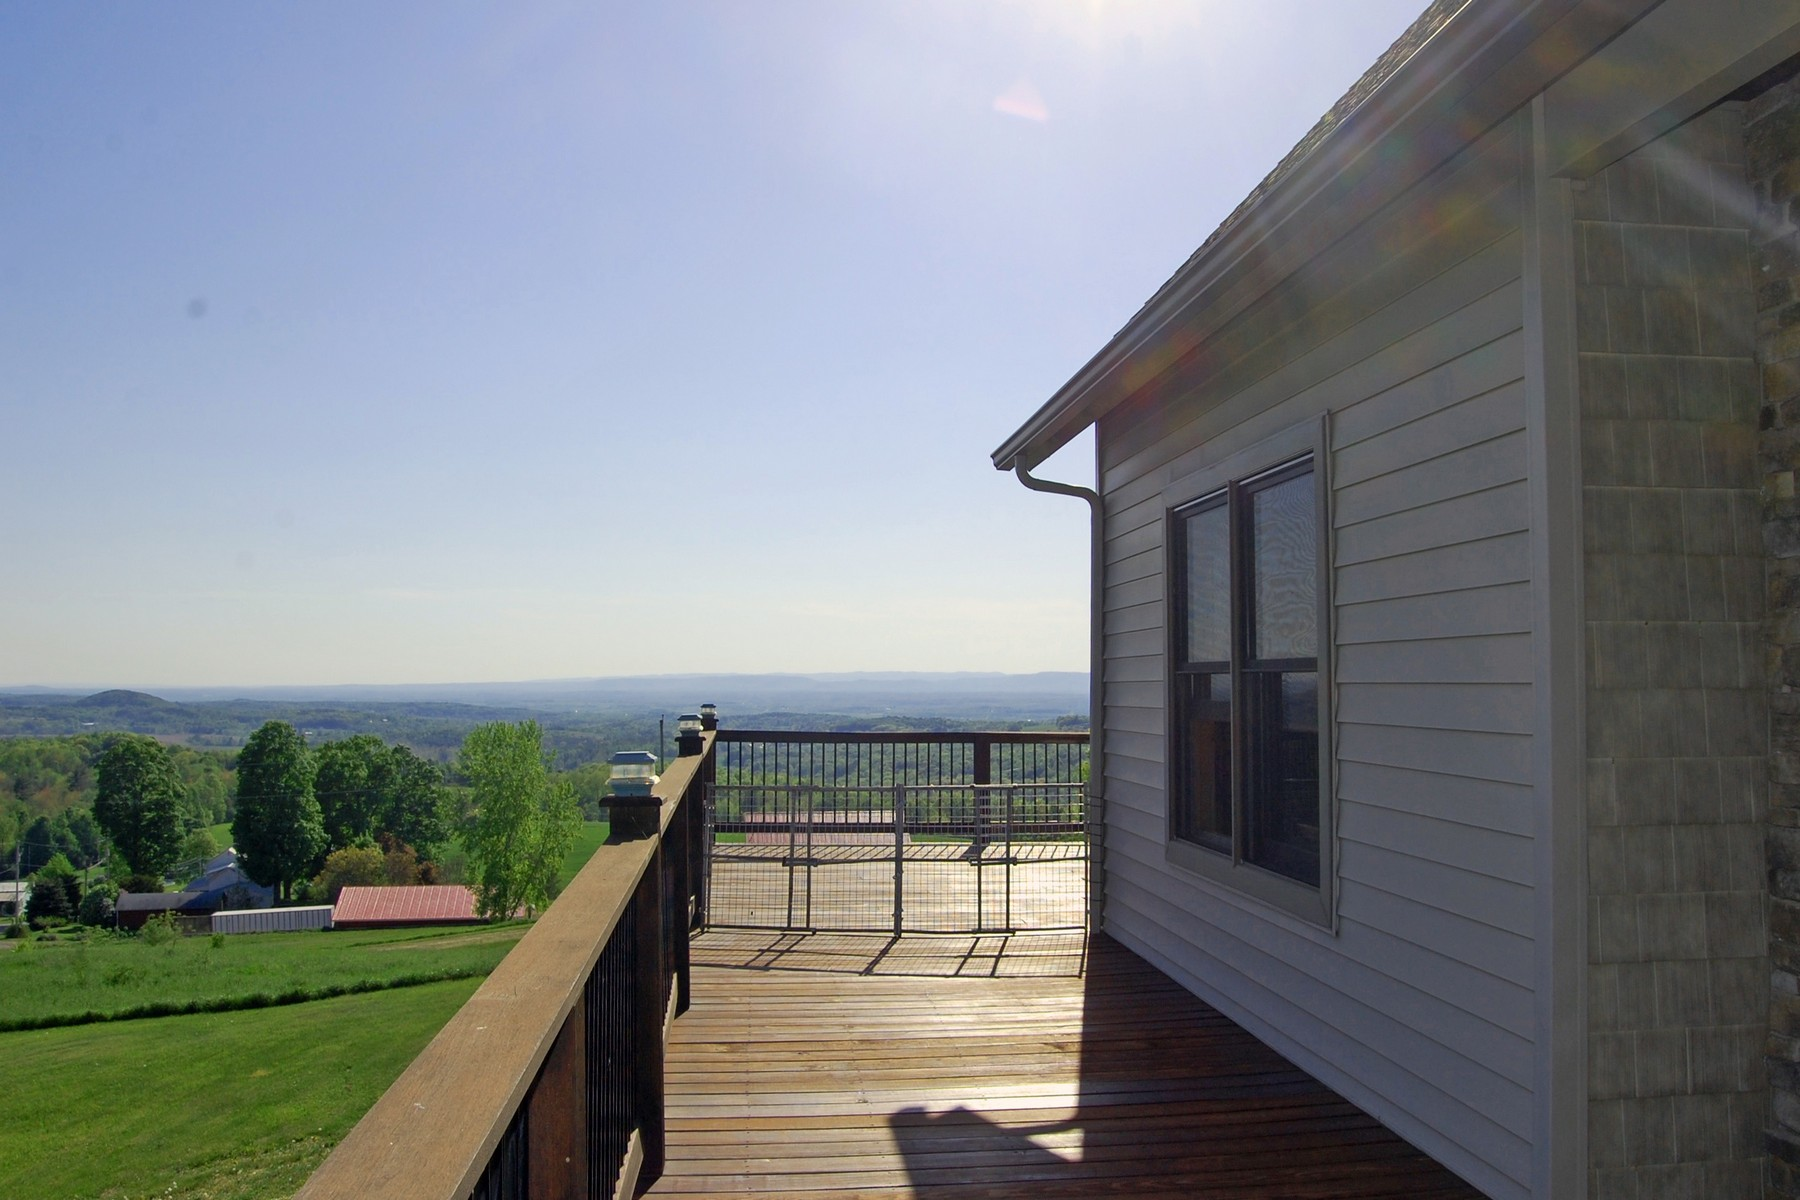 Additional photo for property listing at Breathtaking Home With View of Surrounding Hilltop 163  Pope Hill Rd Argyle, Nueva York 12809 Estados Unidos